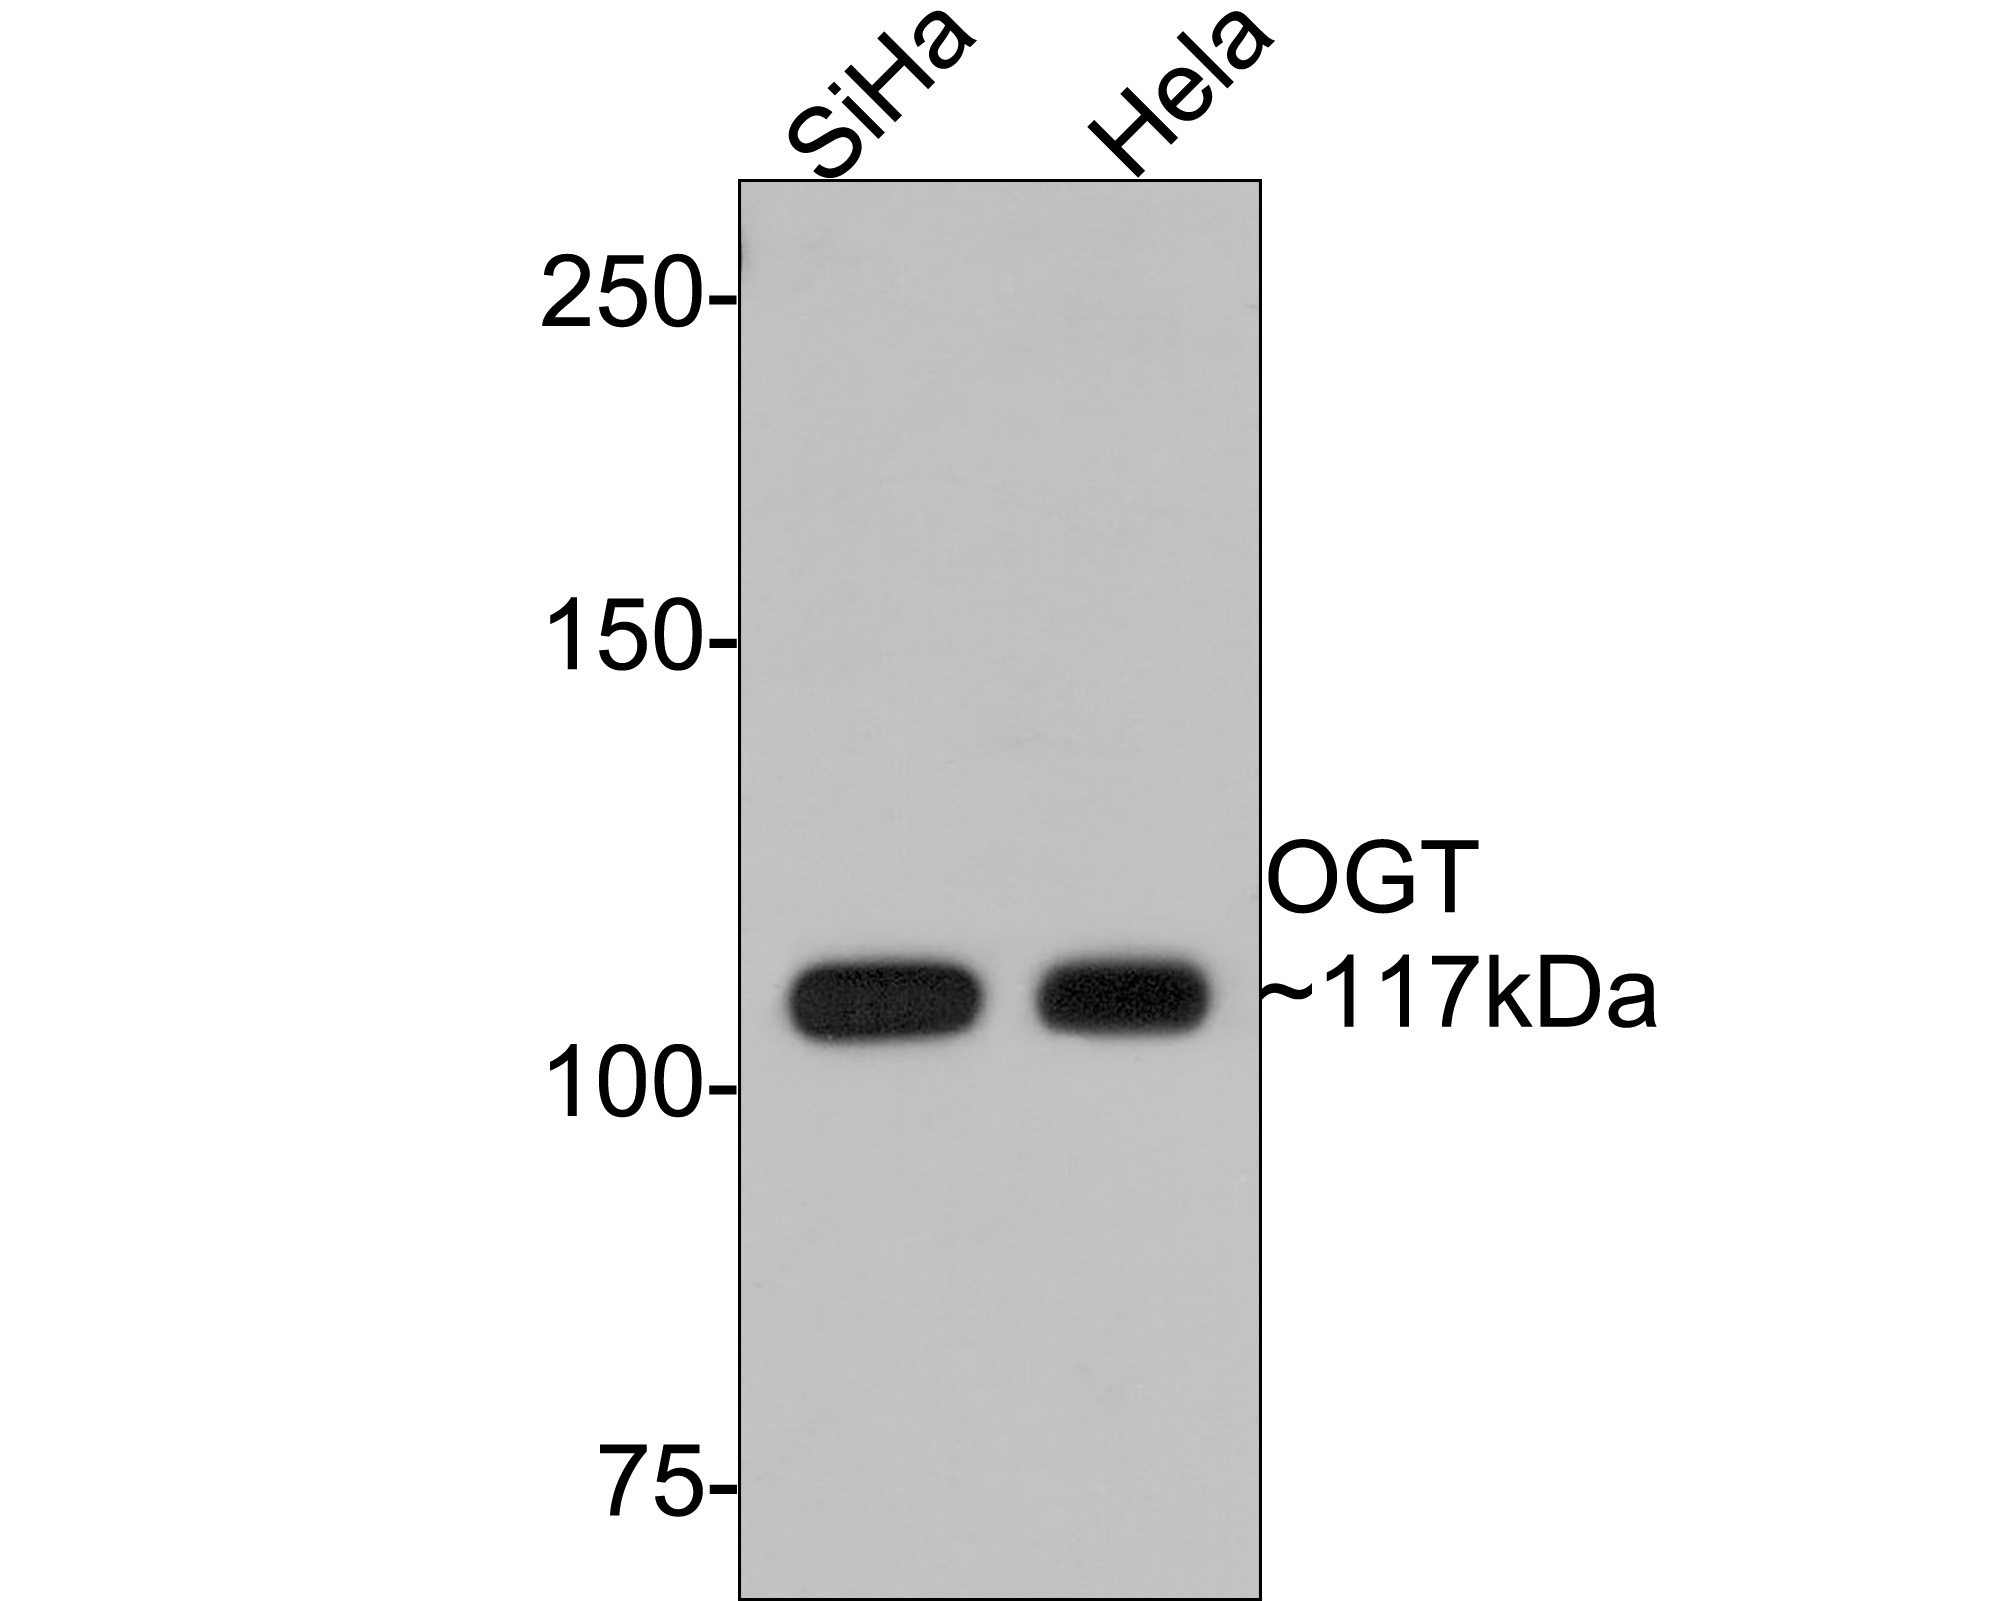 Western blot analysis of OGT on Hela (1) and SiHa (2) cell lysate using anti-OGT antibody at 1/500 dilution.